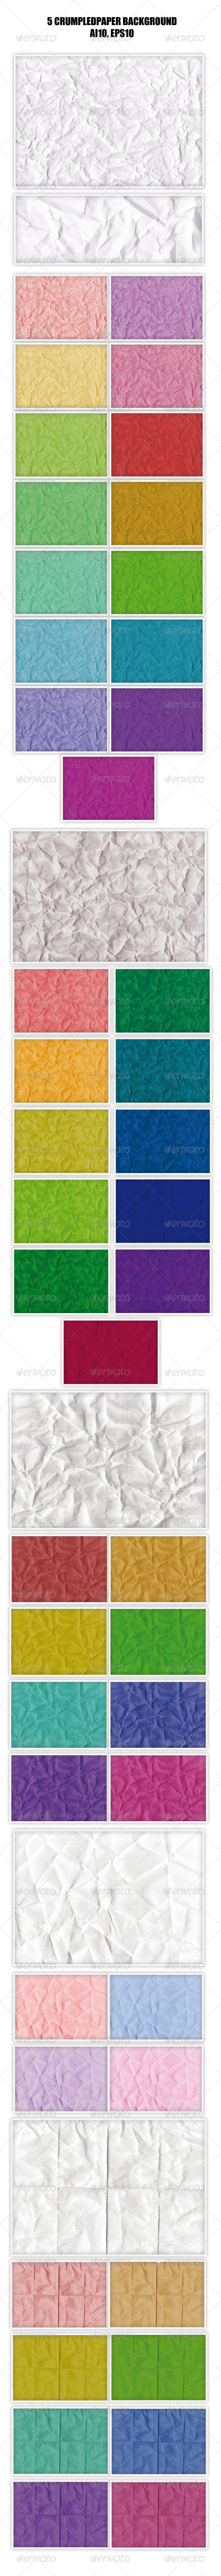 GraphicRiver 5 Crumpled Paper Backgrounds 4669194